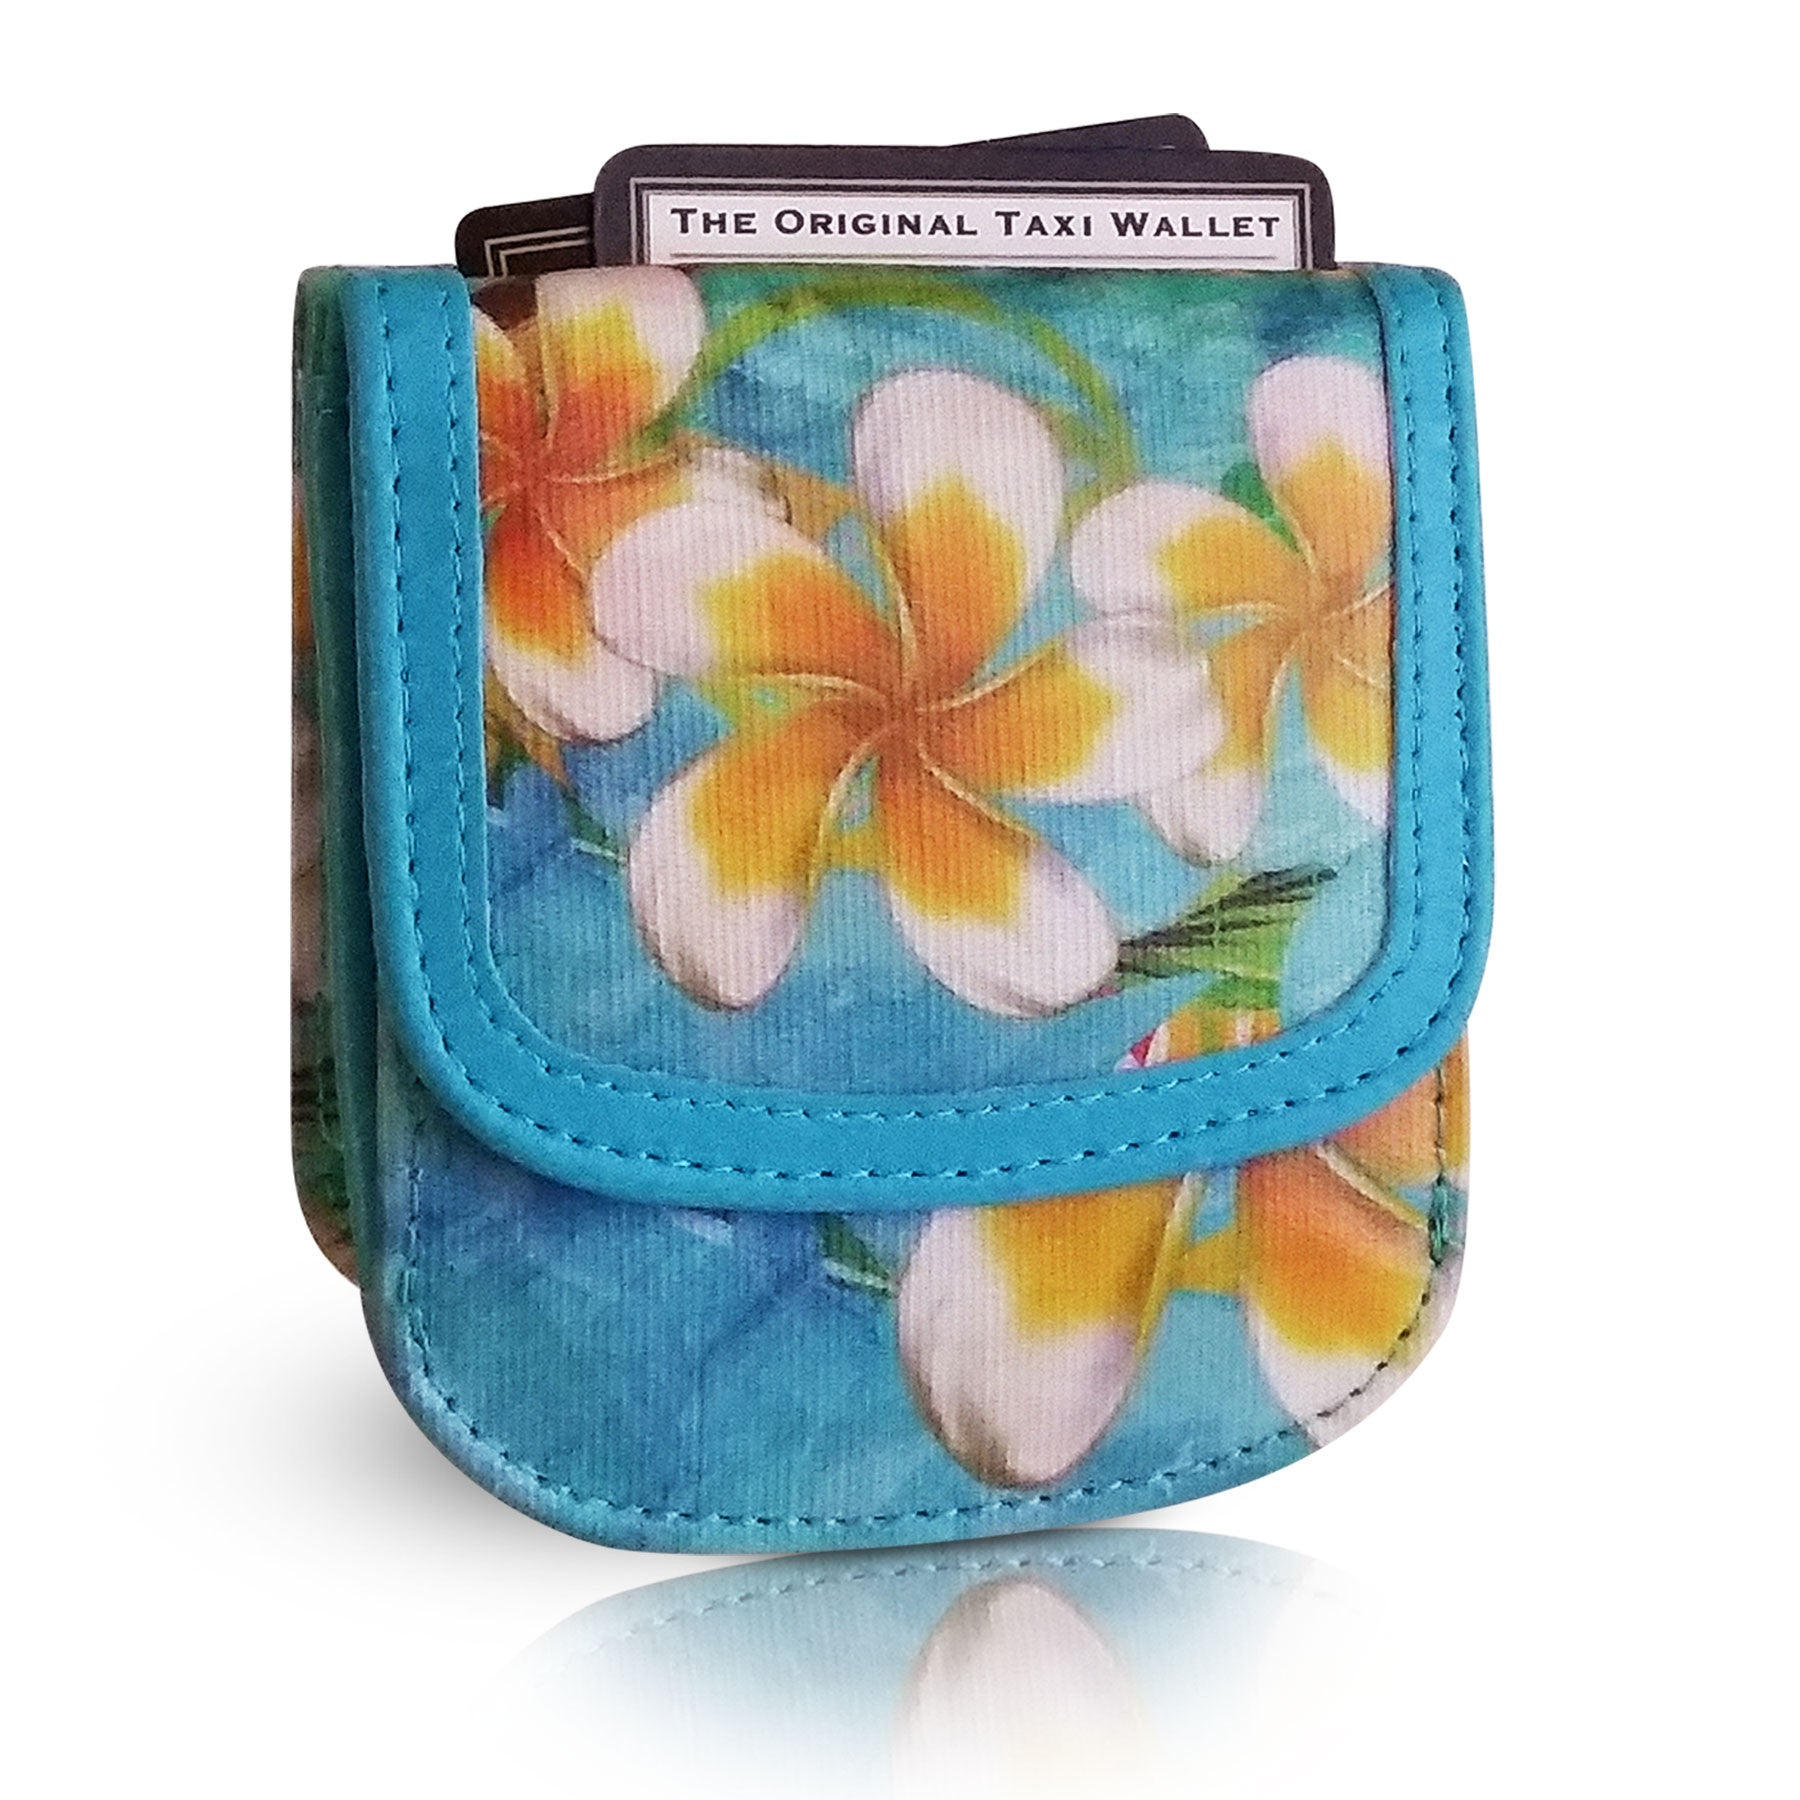 Vegan Taxi Wallet - Hawaiian gifts say Mahalo everyday! Plumeria